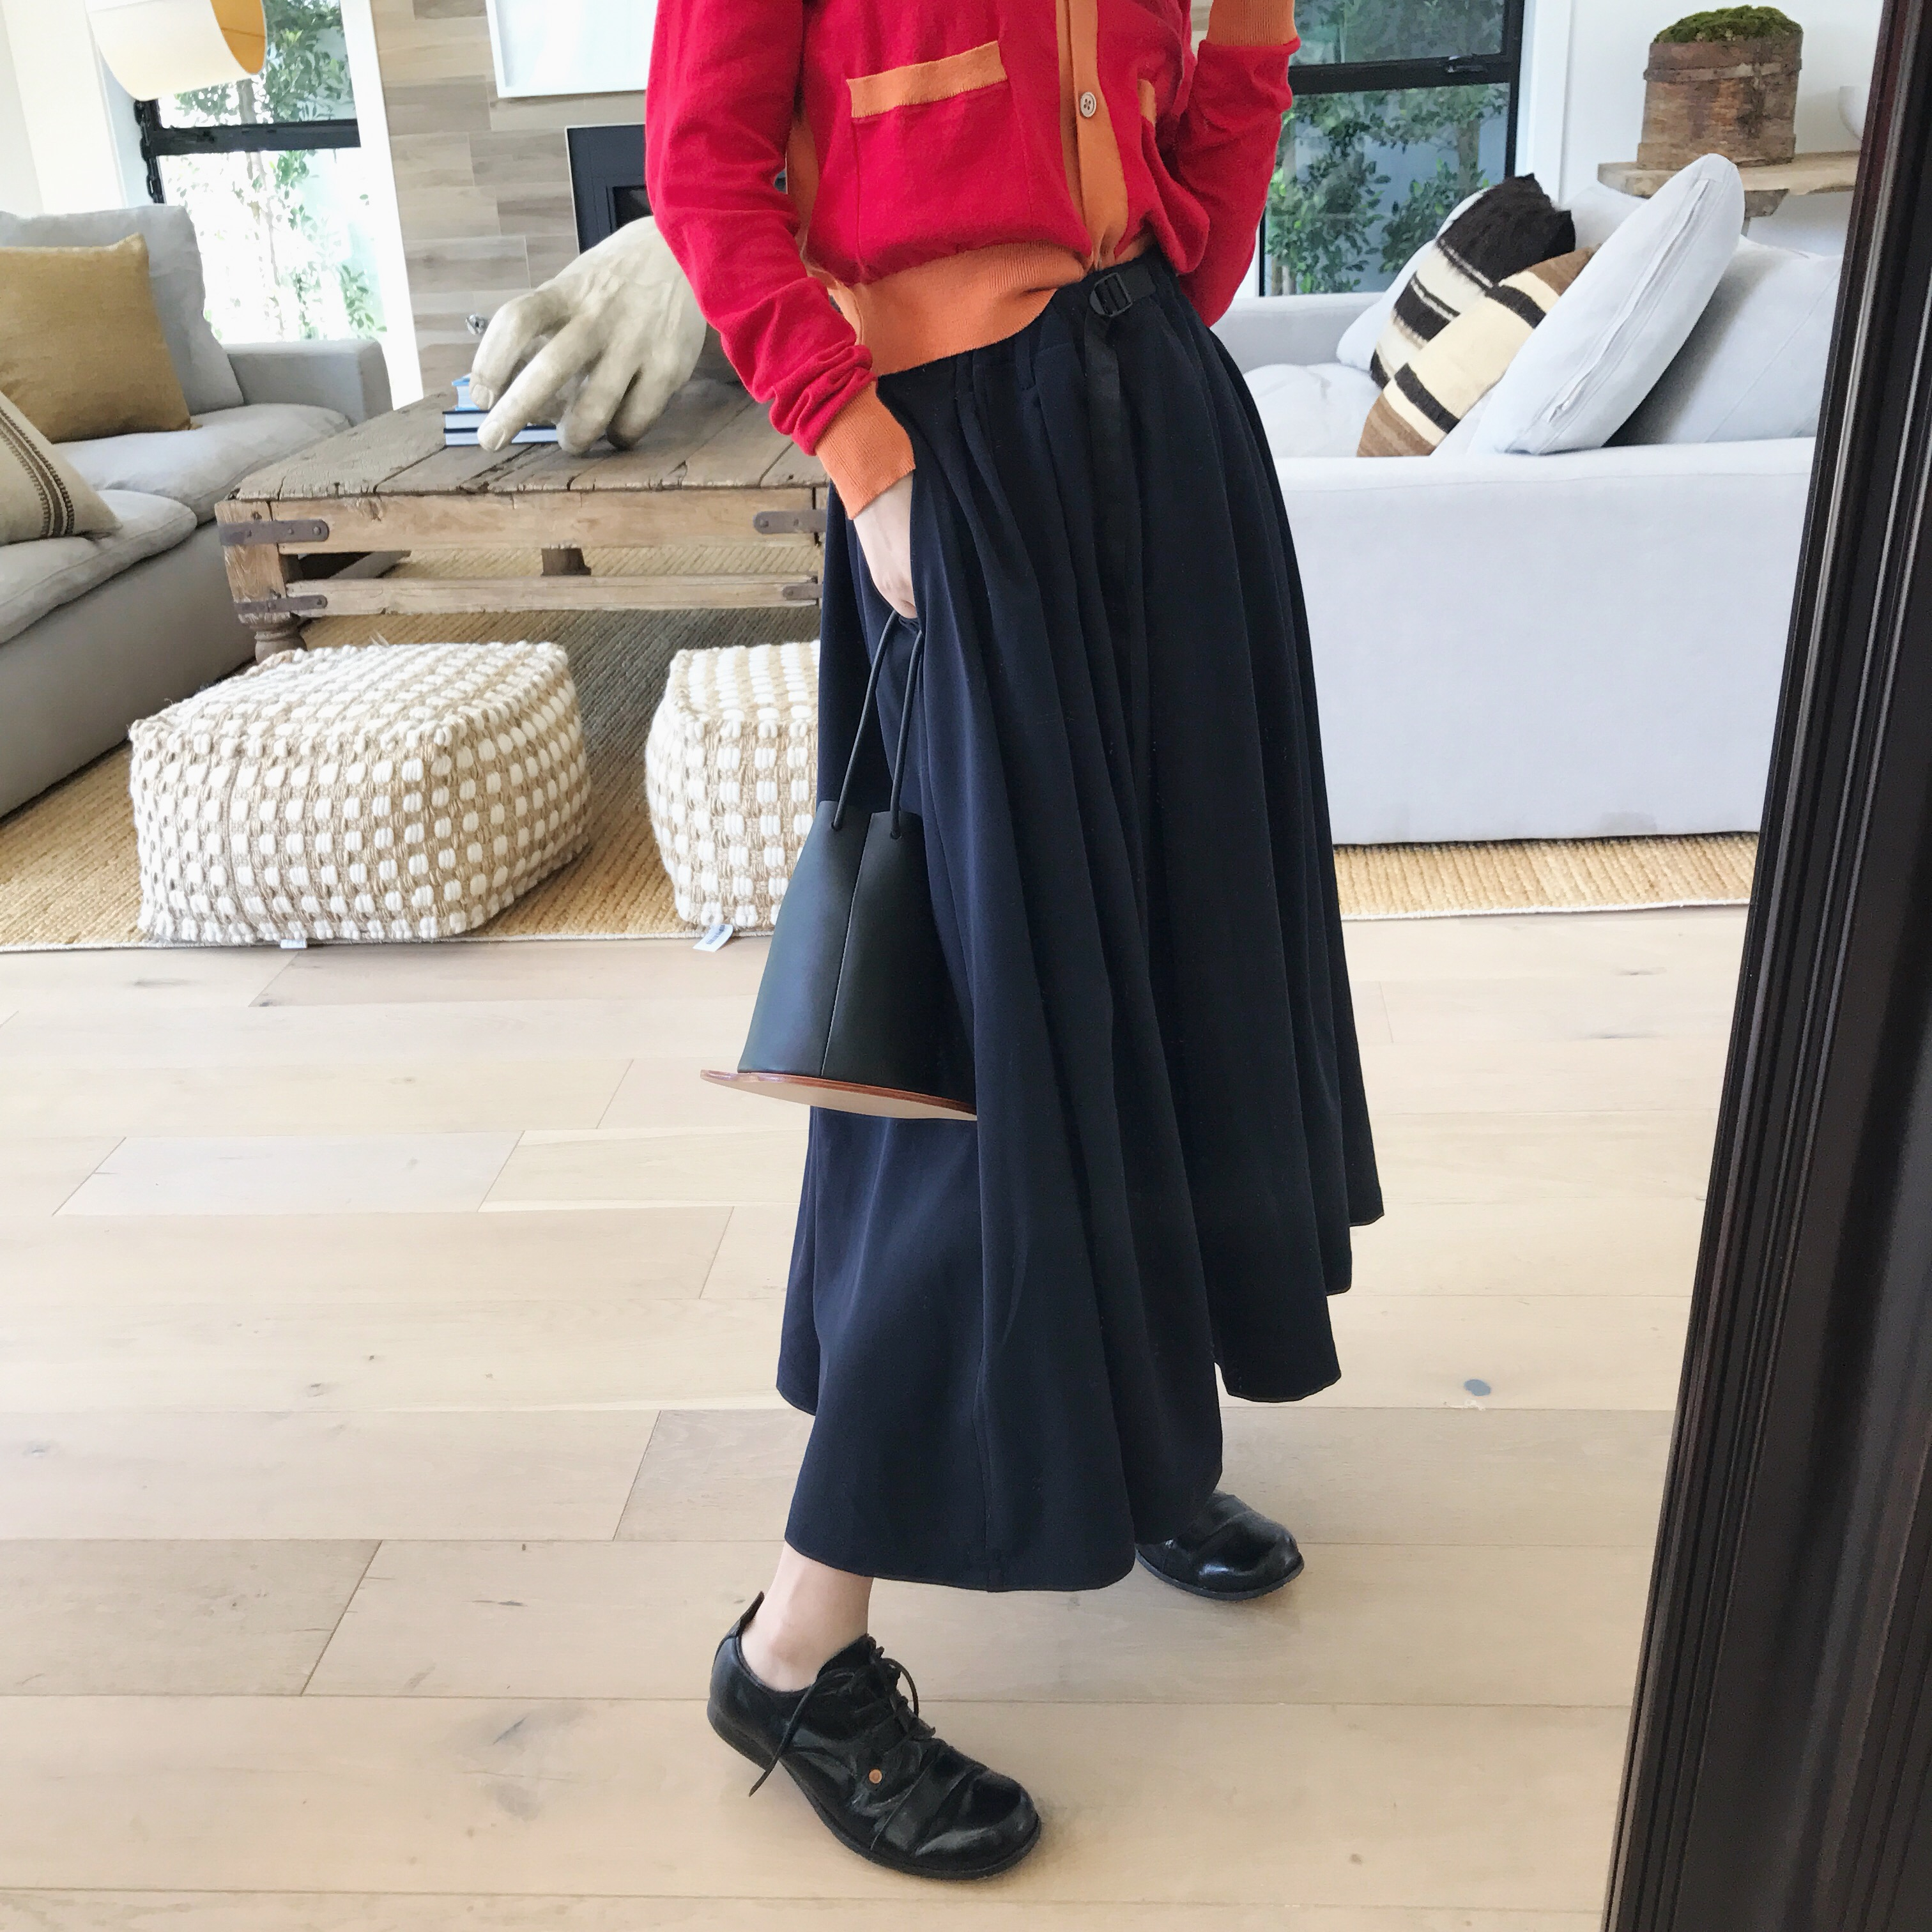 d7bd2f94aa High Waisted Skirts With Belts - Aztec Stone and Reclamations